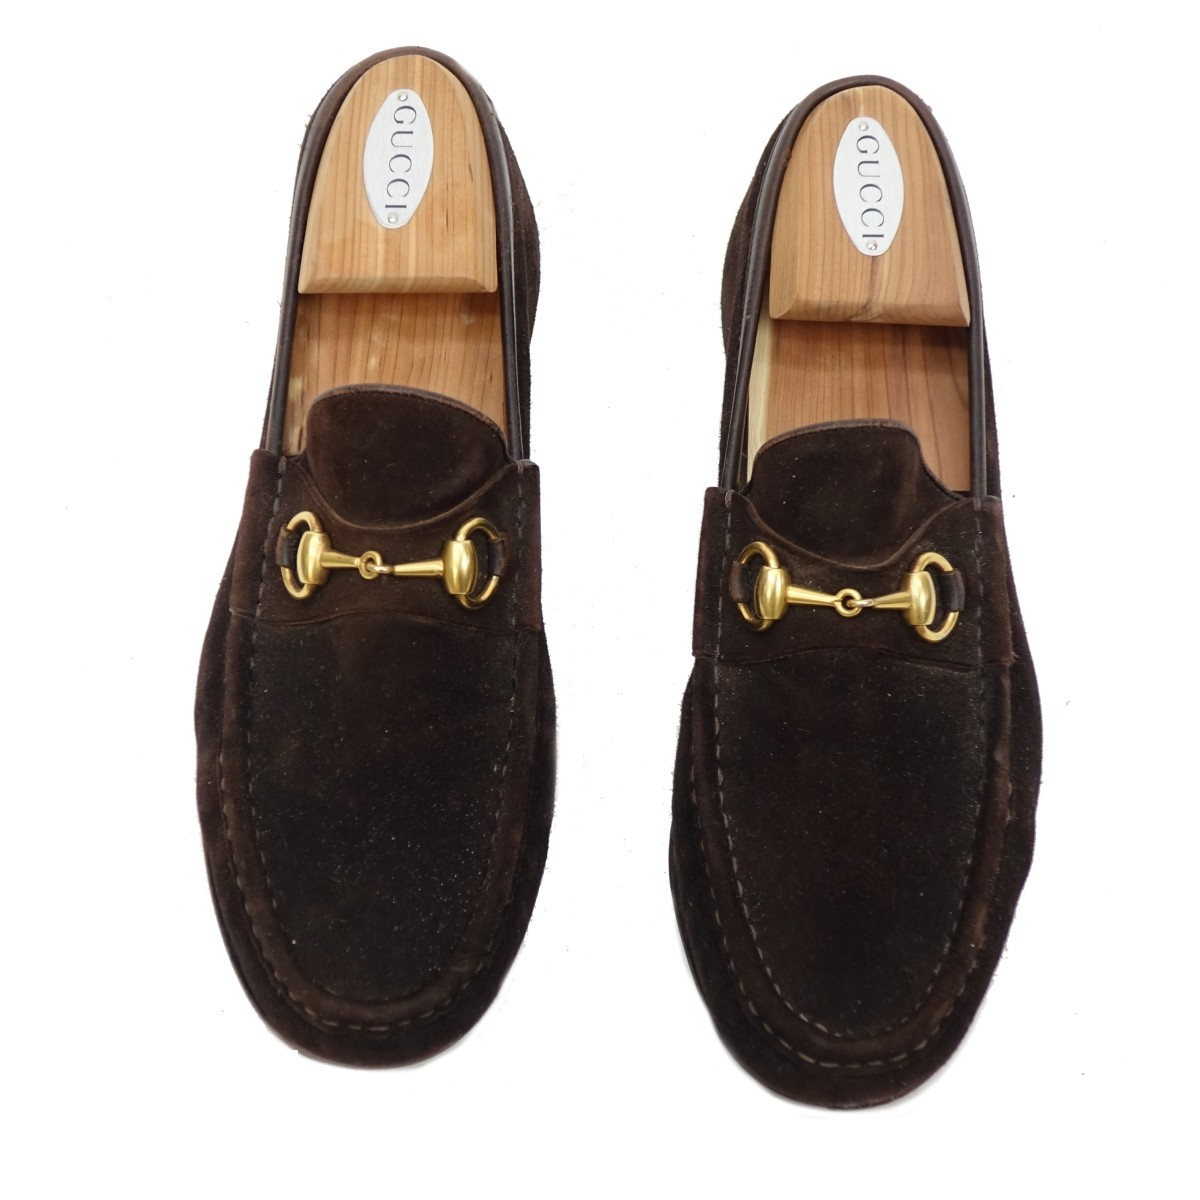 Gucci Loafers and Shoe Stretchers